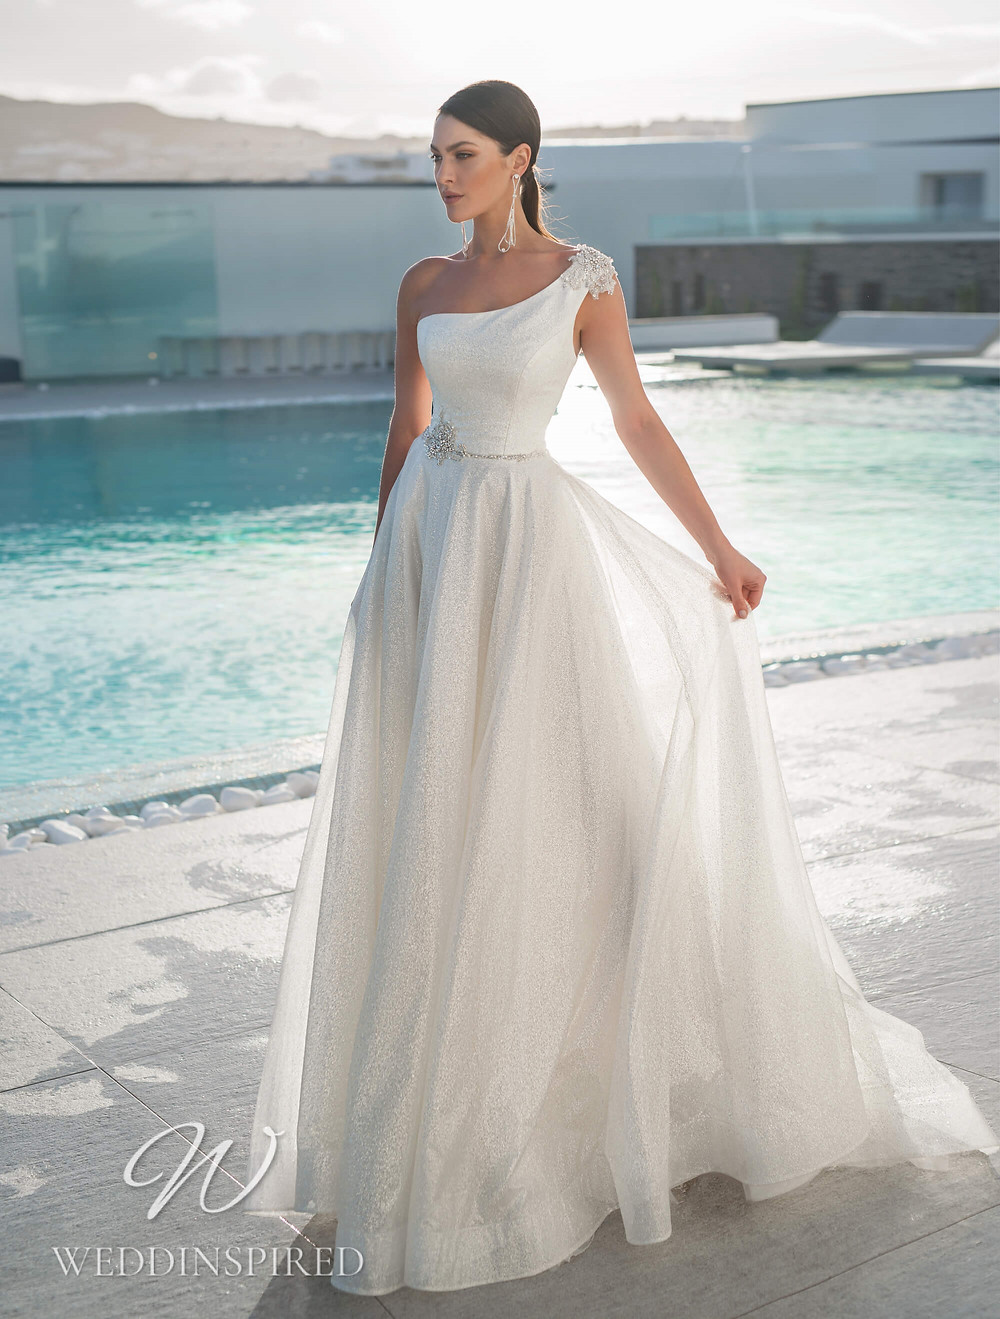 A Blunny 2021 one shoulder sparkly tulle A-line wedding dress